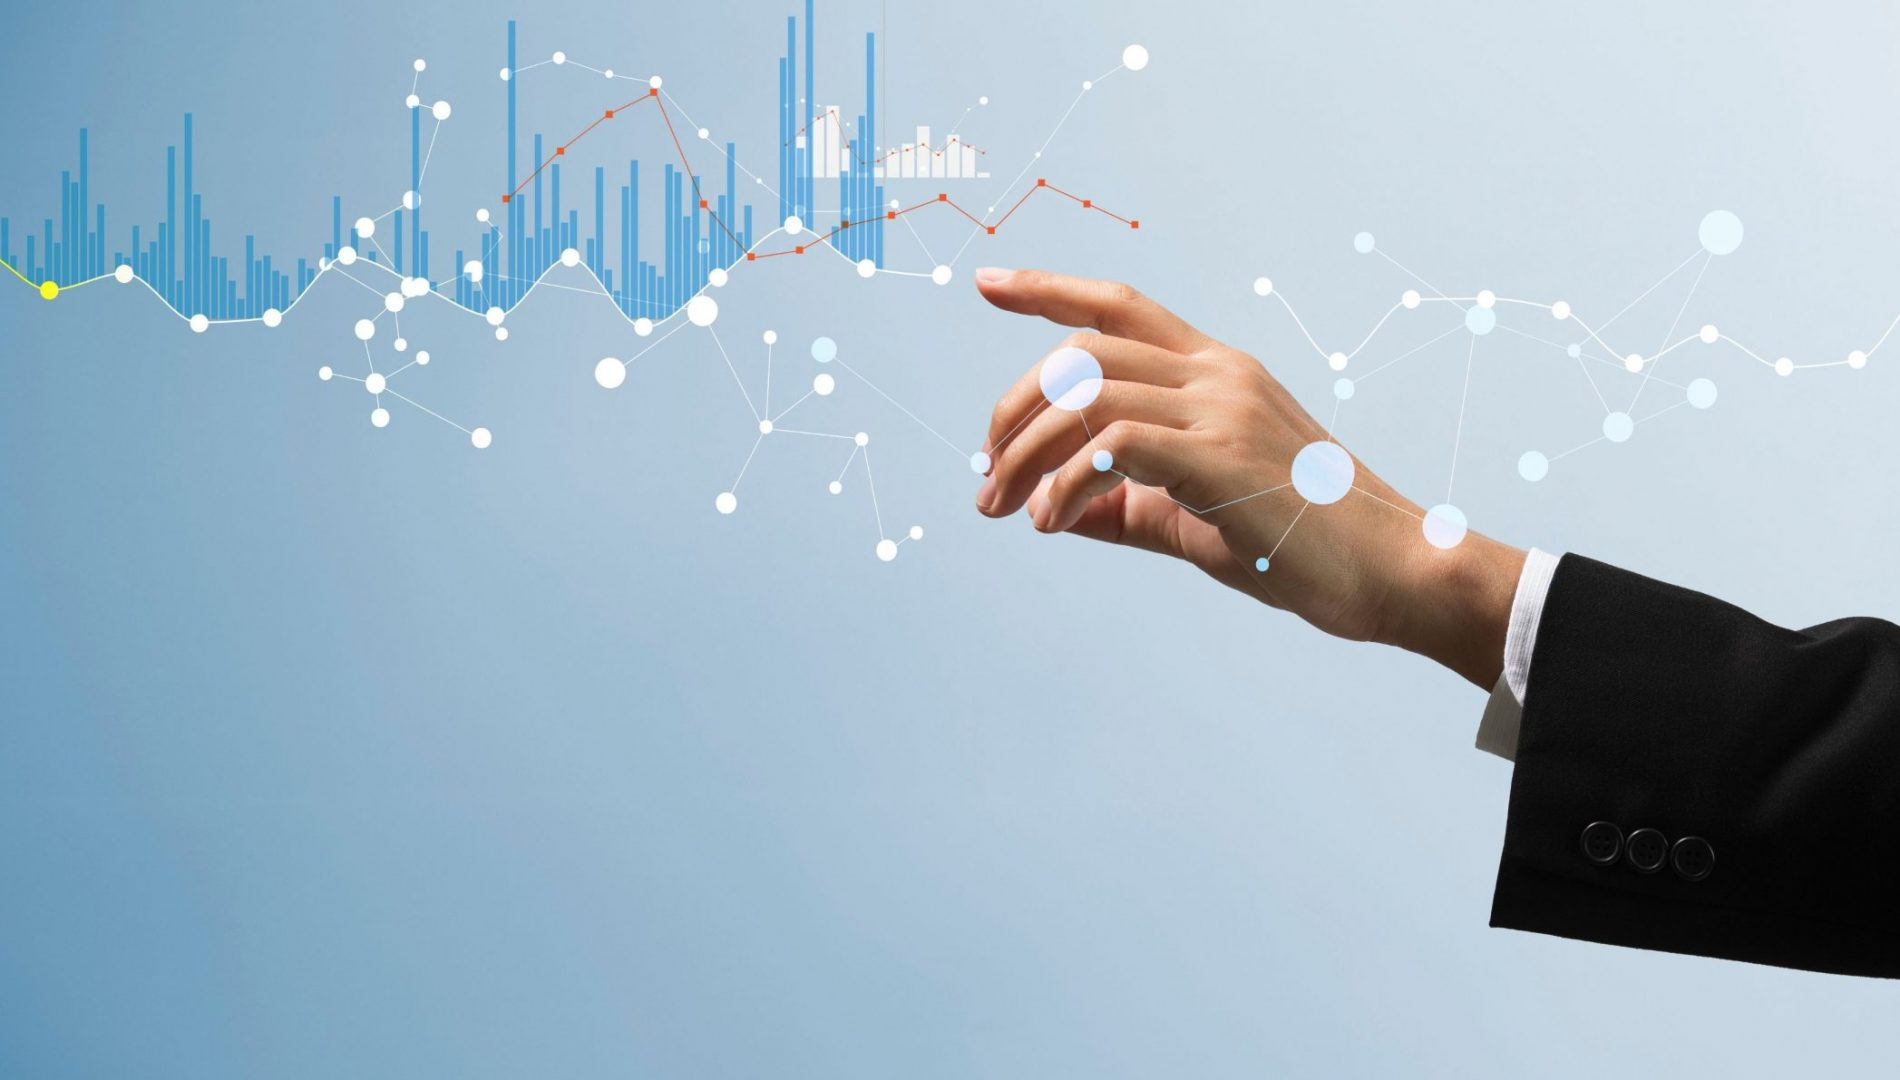 Want to know More About the Power of Data Analytics in Your Enterprise?